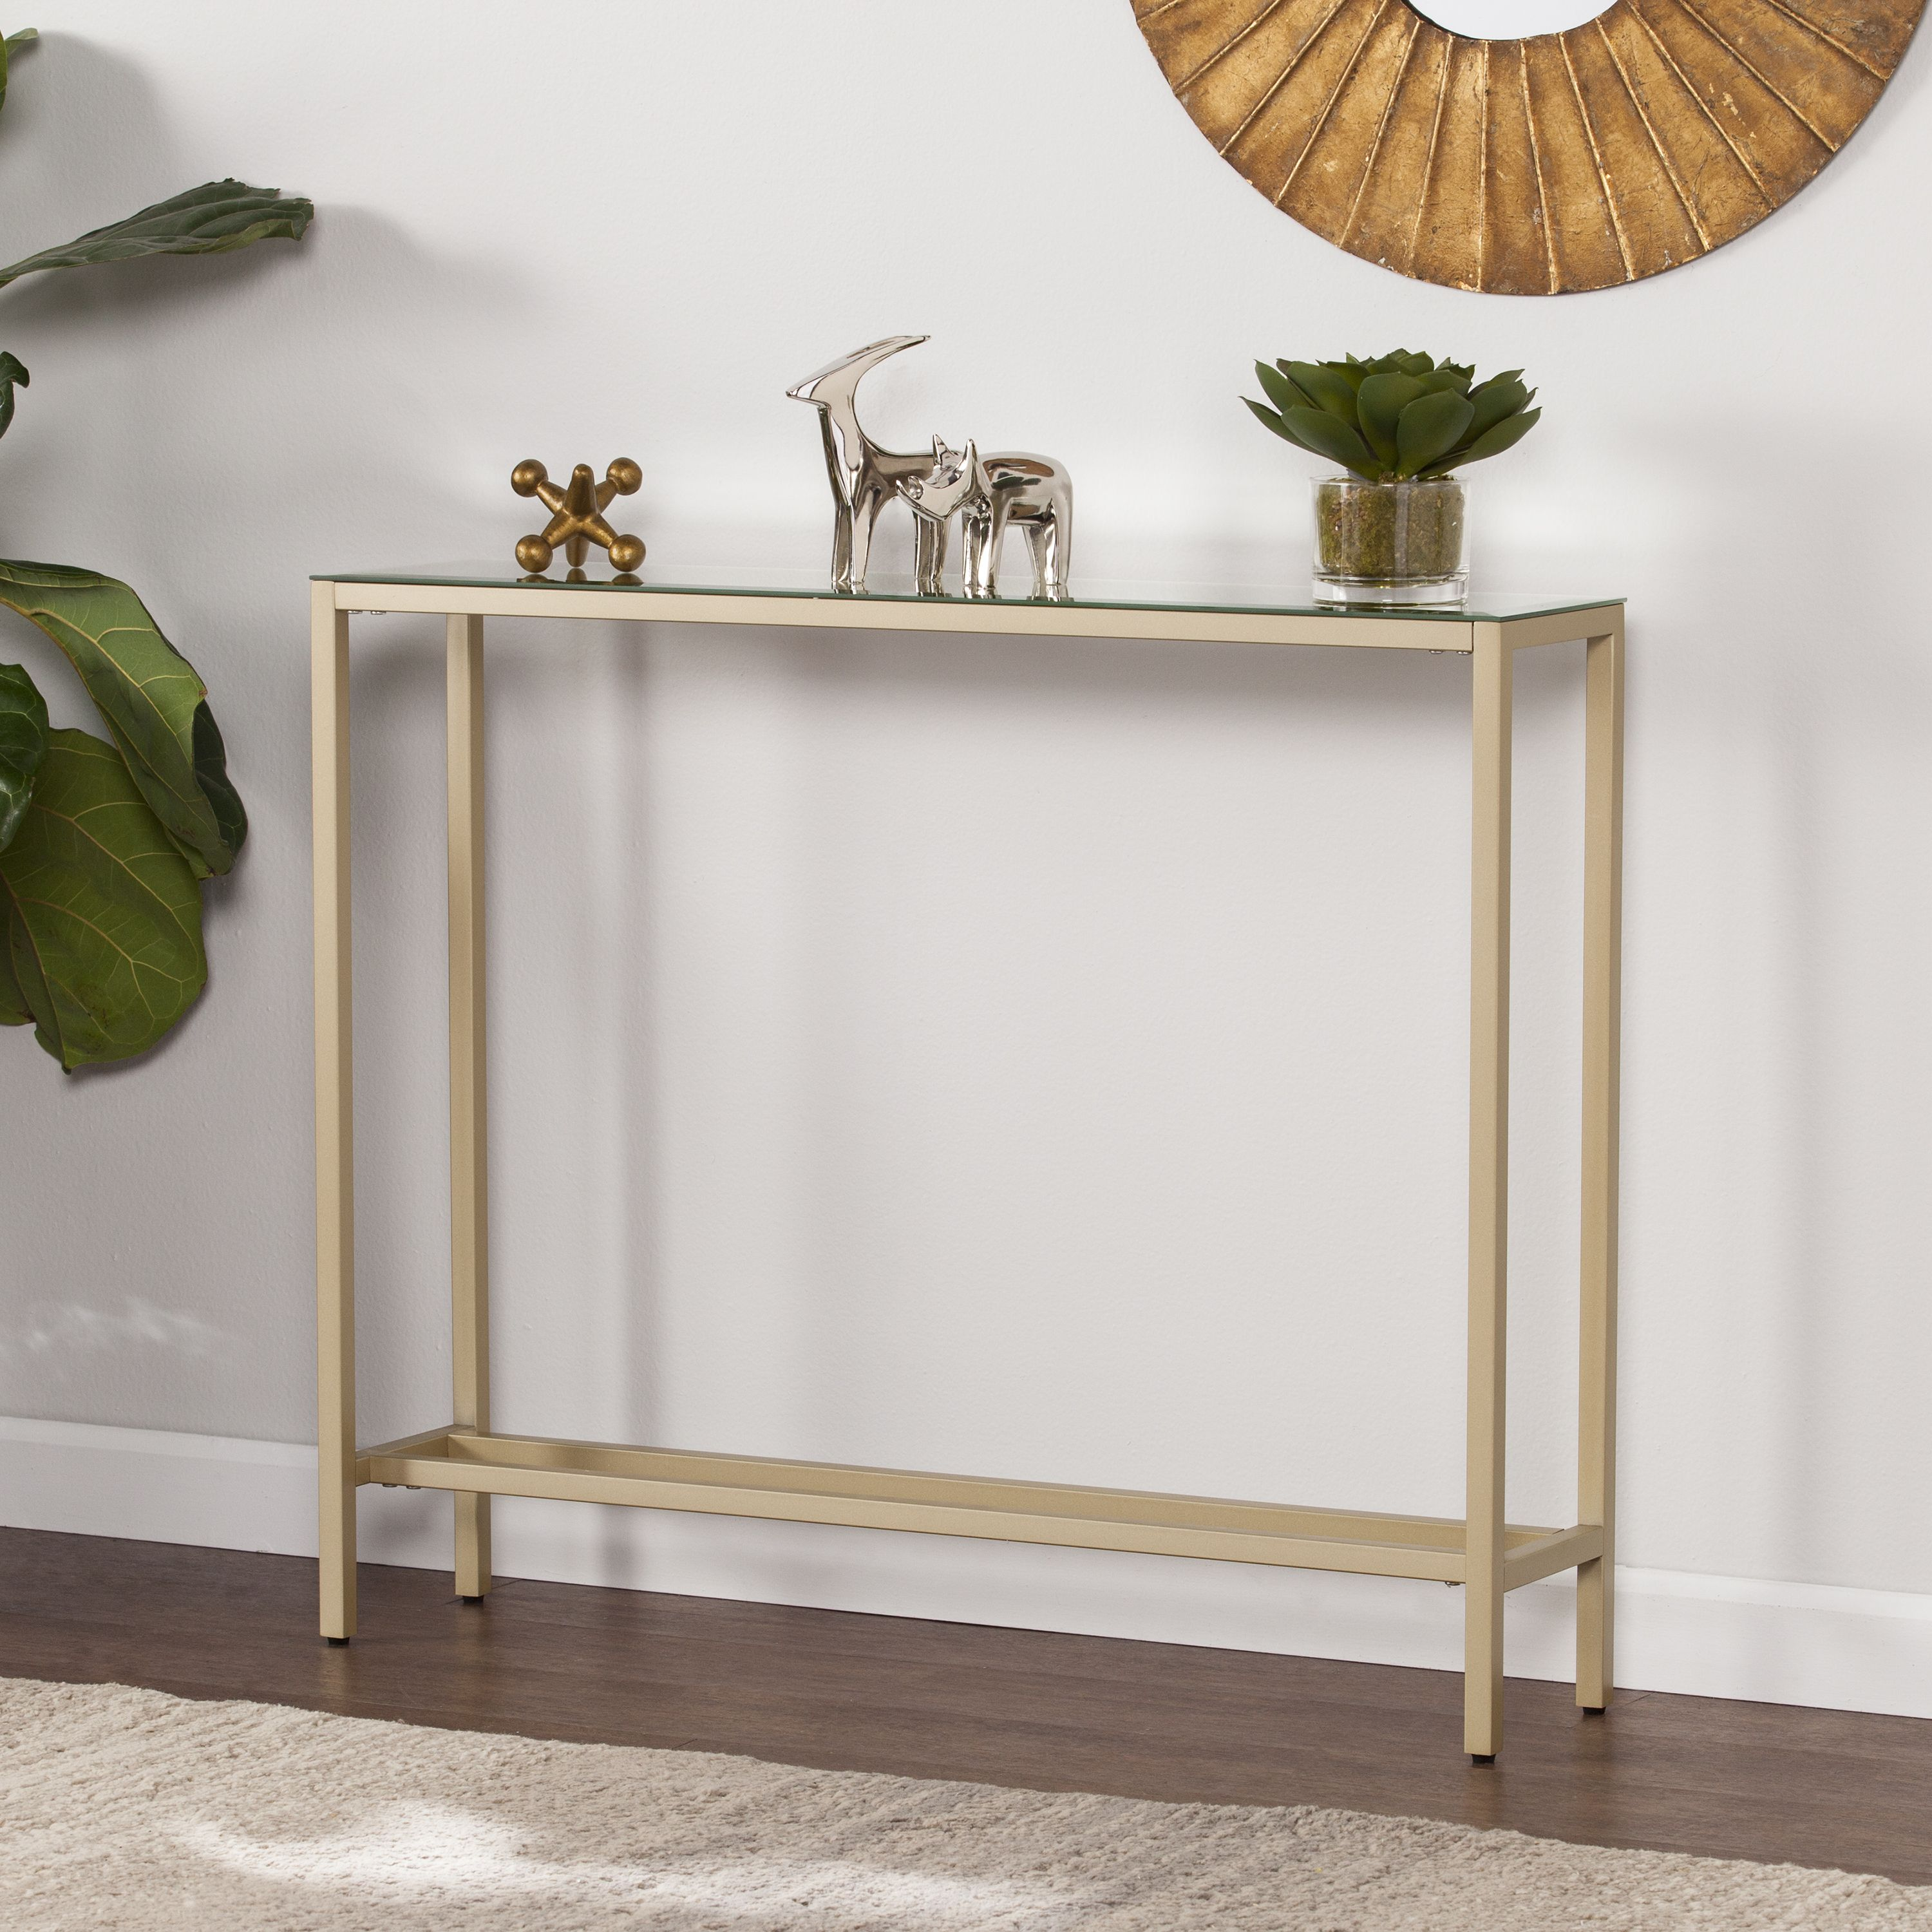 Lowest Price On Southern Enterprises Darrin Gold Narrow Console Table With Mirrored Top Cm9297 Narrow Console Table Small Console Tables Mirrored Console Table